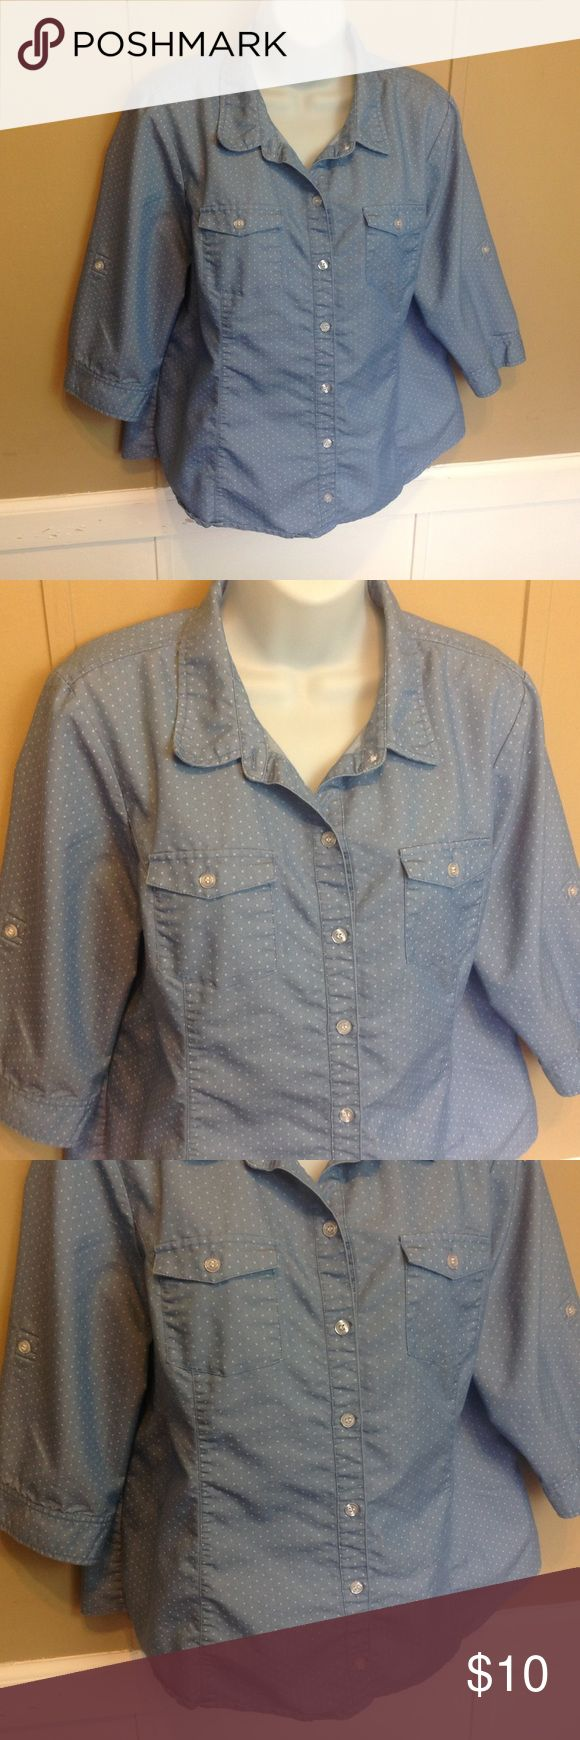 """Christopher and Banks Button Down Blouse Maker: Christopher and Banks ♥ Material: 65% Cotton 35% Polyester ♥ Color: Blue with White Polka Dots ♥ Measured Size: Pit to pit- 21"""" Pit to cuff- 10"""" Shoulder to waist- 22"""" ♥ Tag Size:  Petite Large ♥ Actual Size: Petite Large  ♥ Condition: Great  ♥ Item #: (office use only) C  Follow us on Instagram and facebook for coupon codes!  INSTAGRAM-thehausofvintage1984 Facebook- intergalactic haus of vintage 1984 or @hausofvintage1984 Christopher & Banks…"""